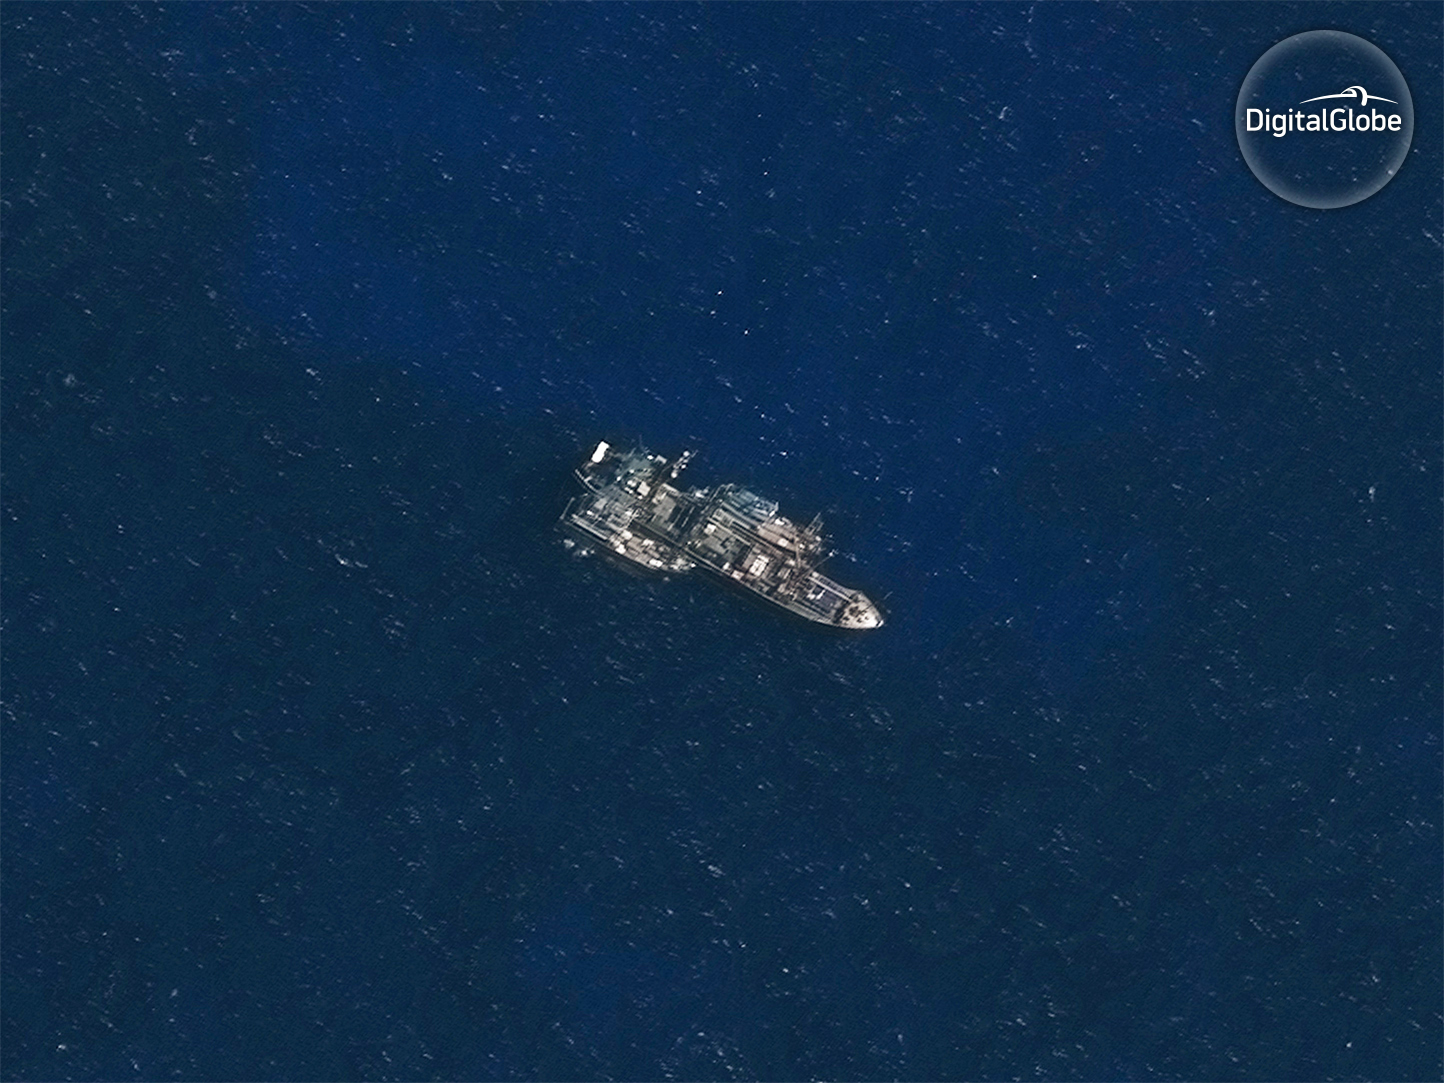 Image of Likely Transshipment by Thai Reefer Caught by Satellite